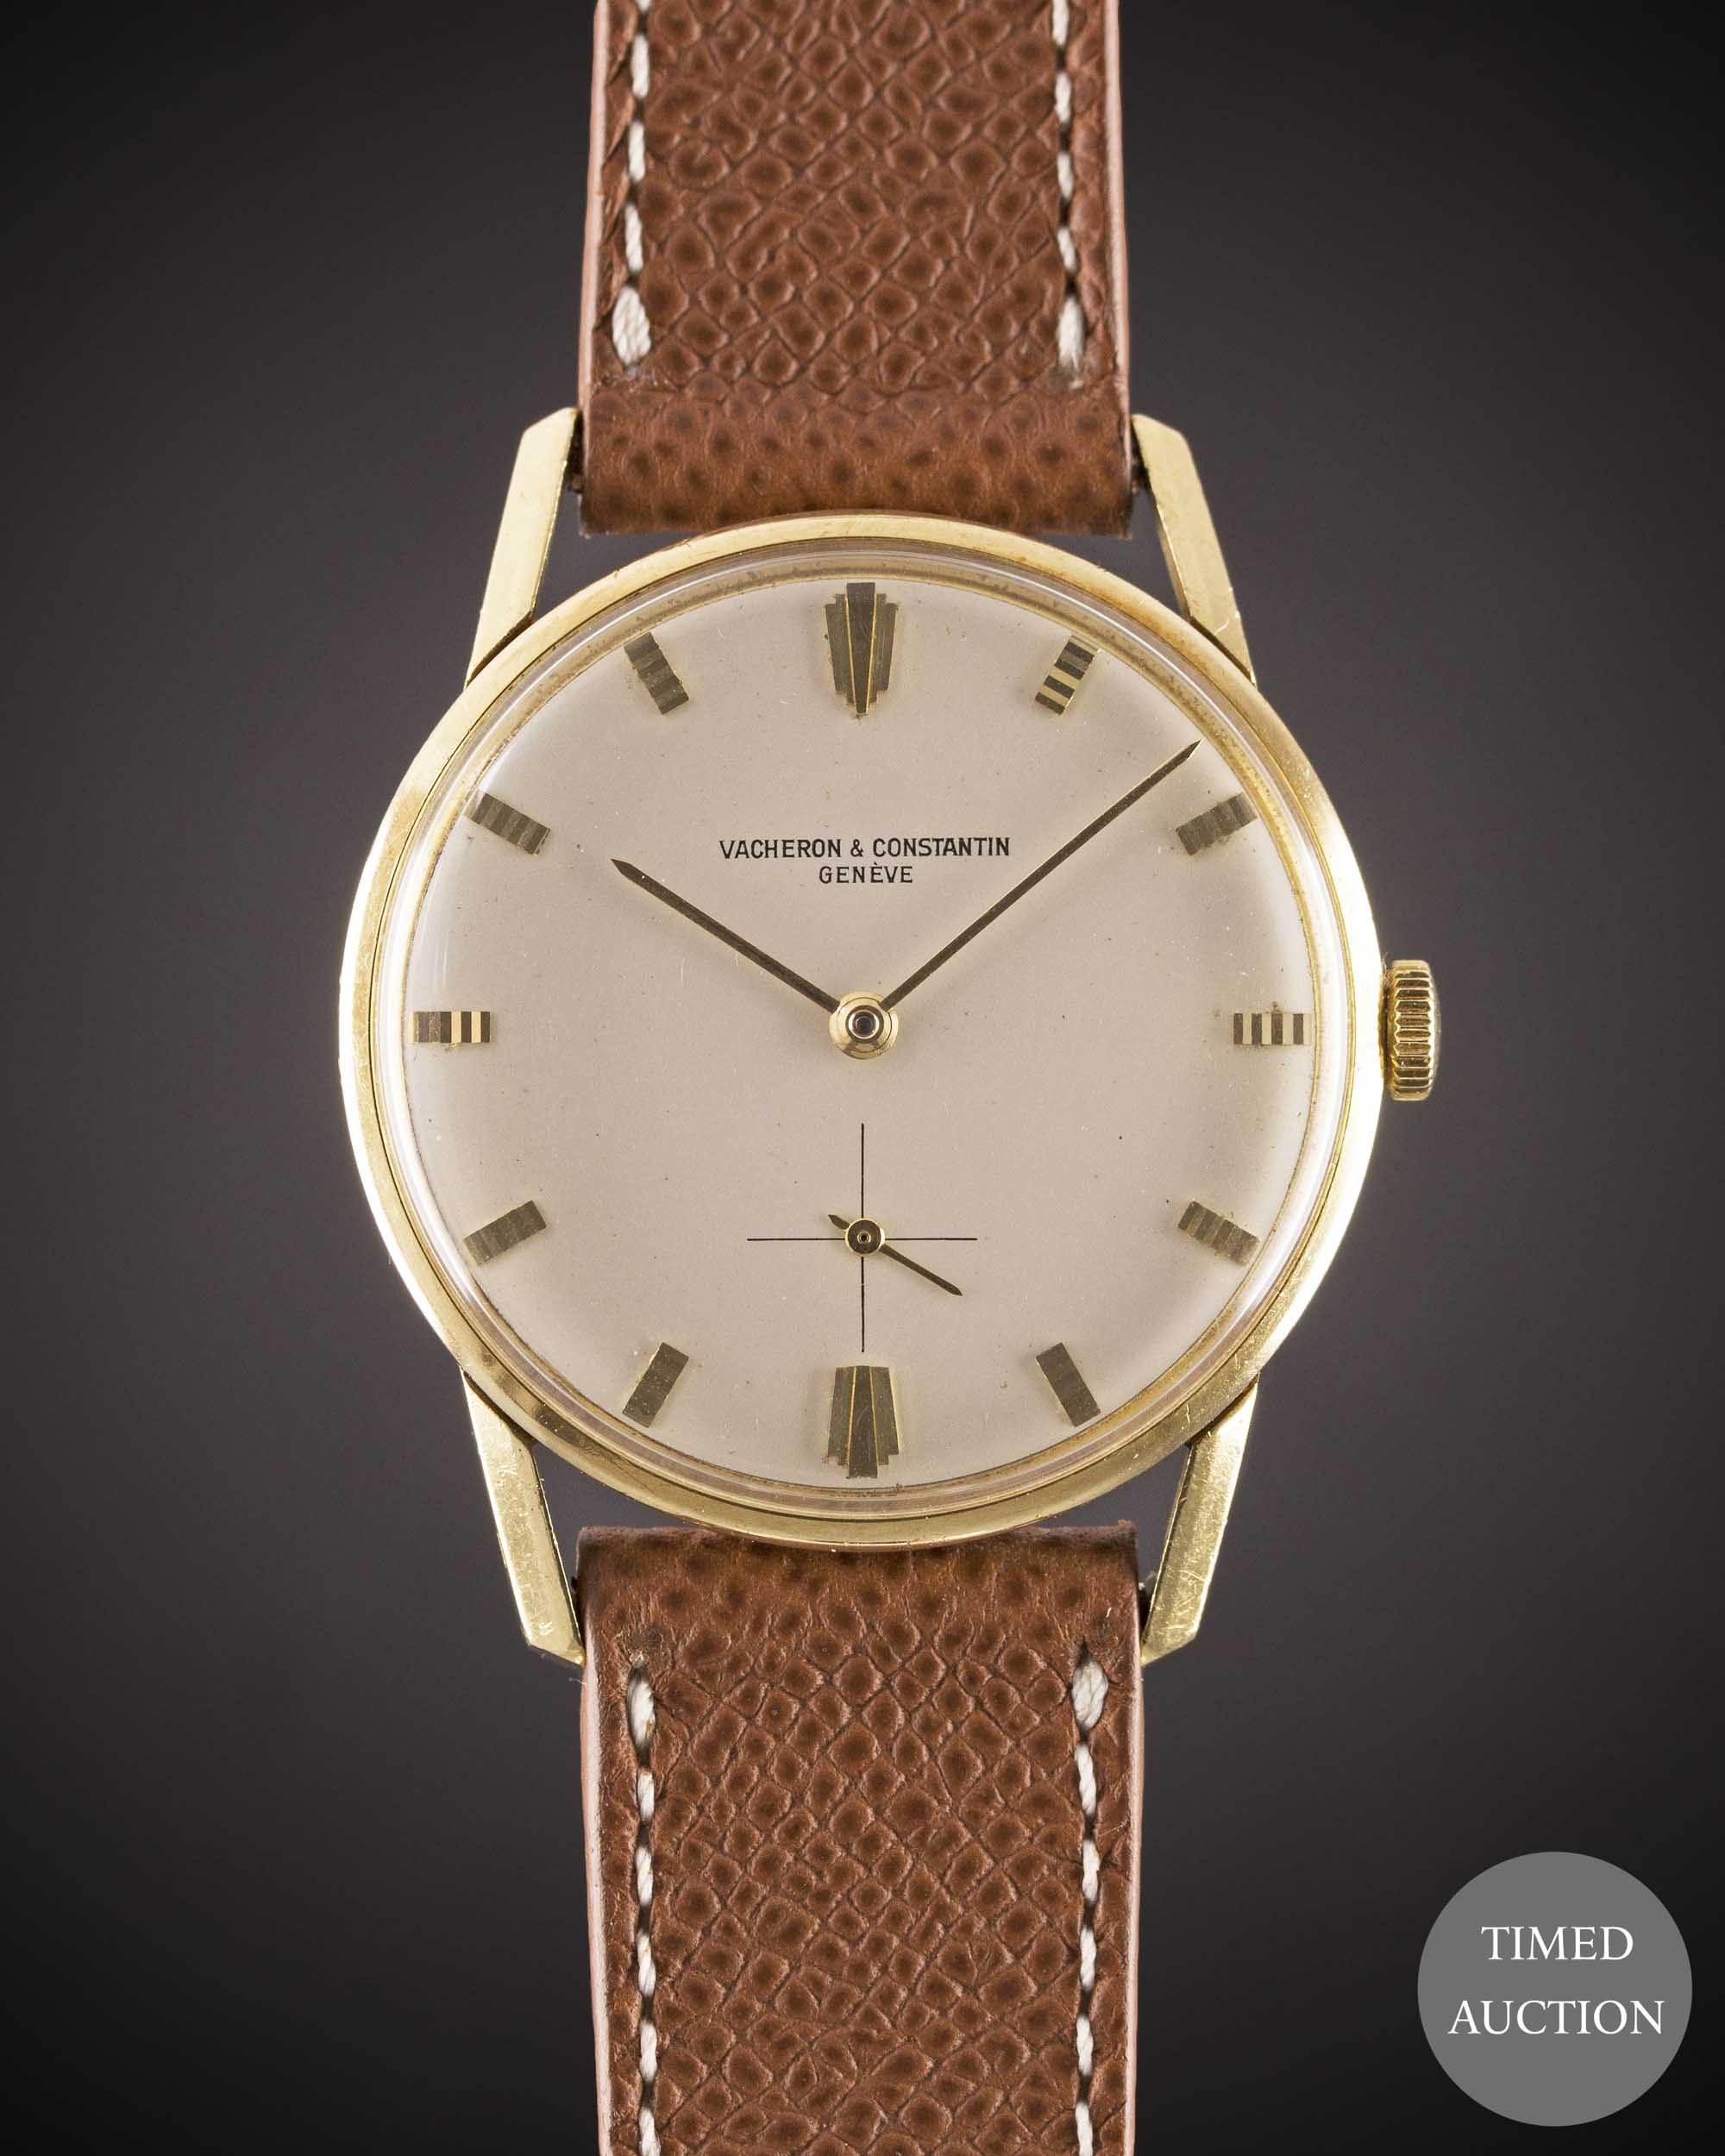 Lot 21 - A GENTLEMAN'S 18K SOLID YELLOW GOLD VACHERON & CONSTANTIN WRIST WATCH CIRCA 1960s, REF. 6484 WITH ""